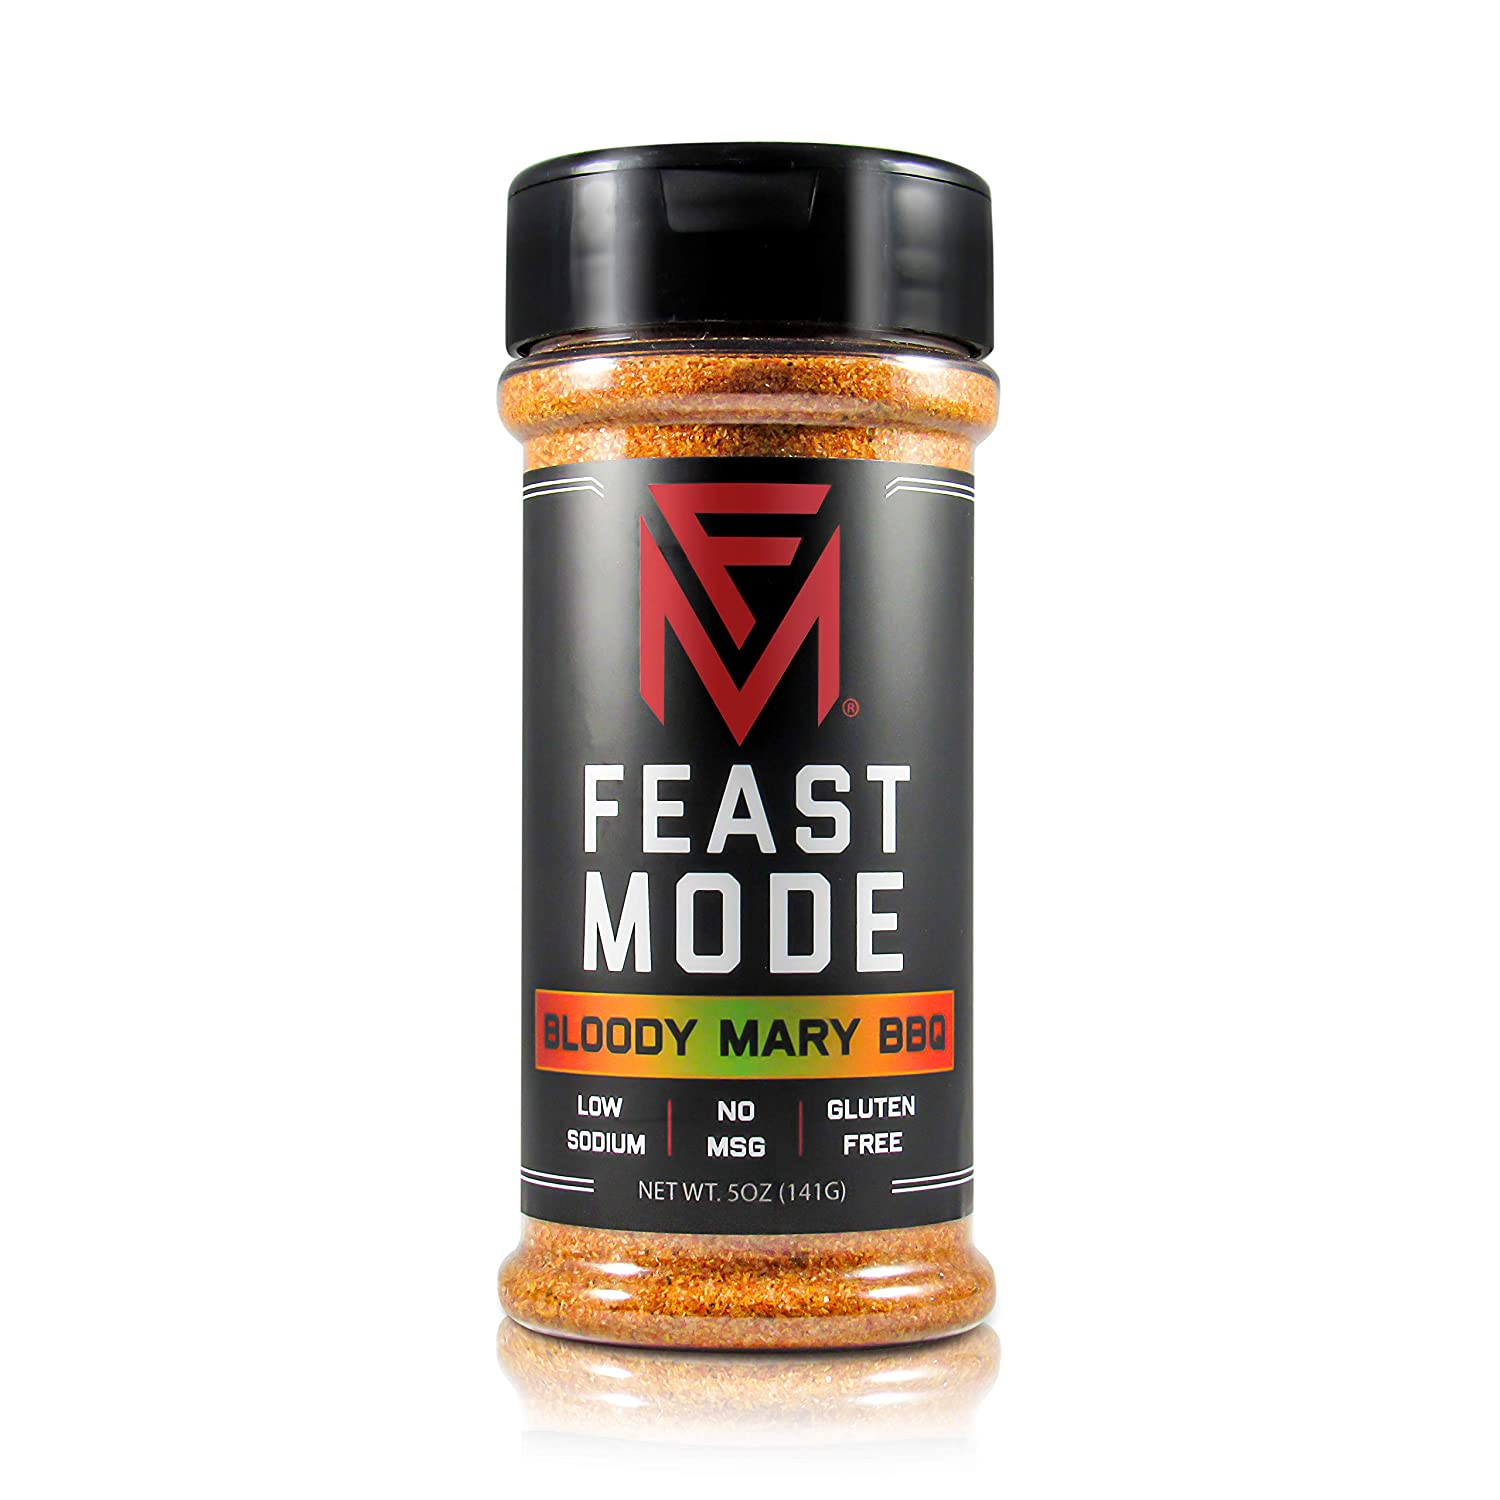 Bloody Mary BBQ - Feast Max 58% OFF In stock Mode Flavors MSG Low No Glute Sodium